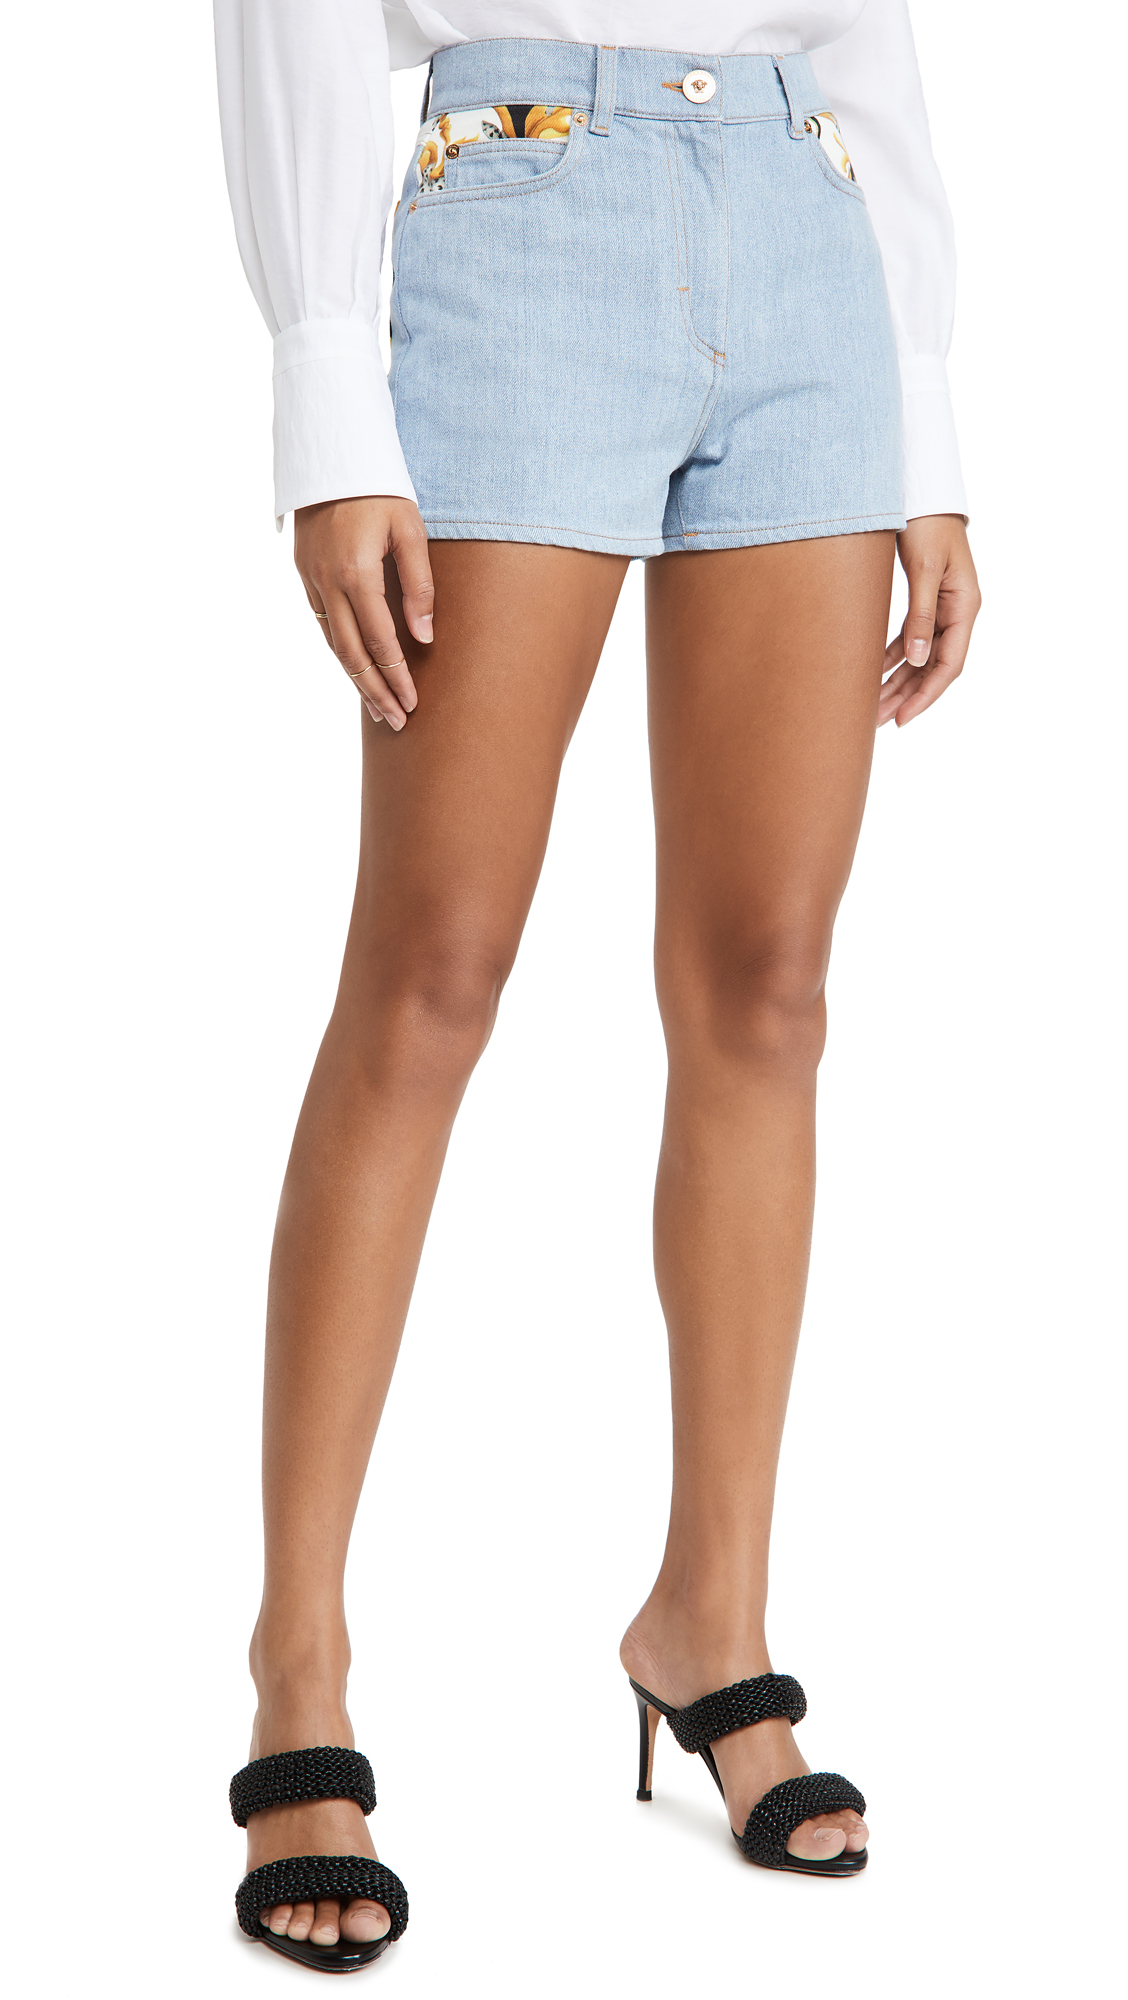 VERSACE DONNA DENIM SHORTS